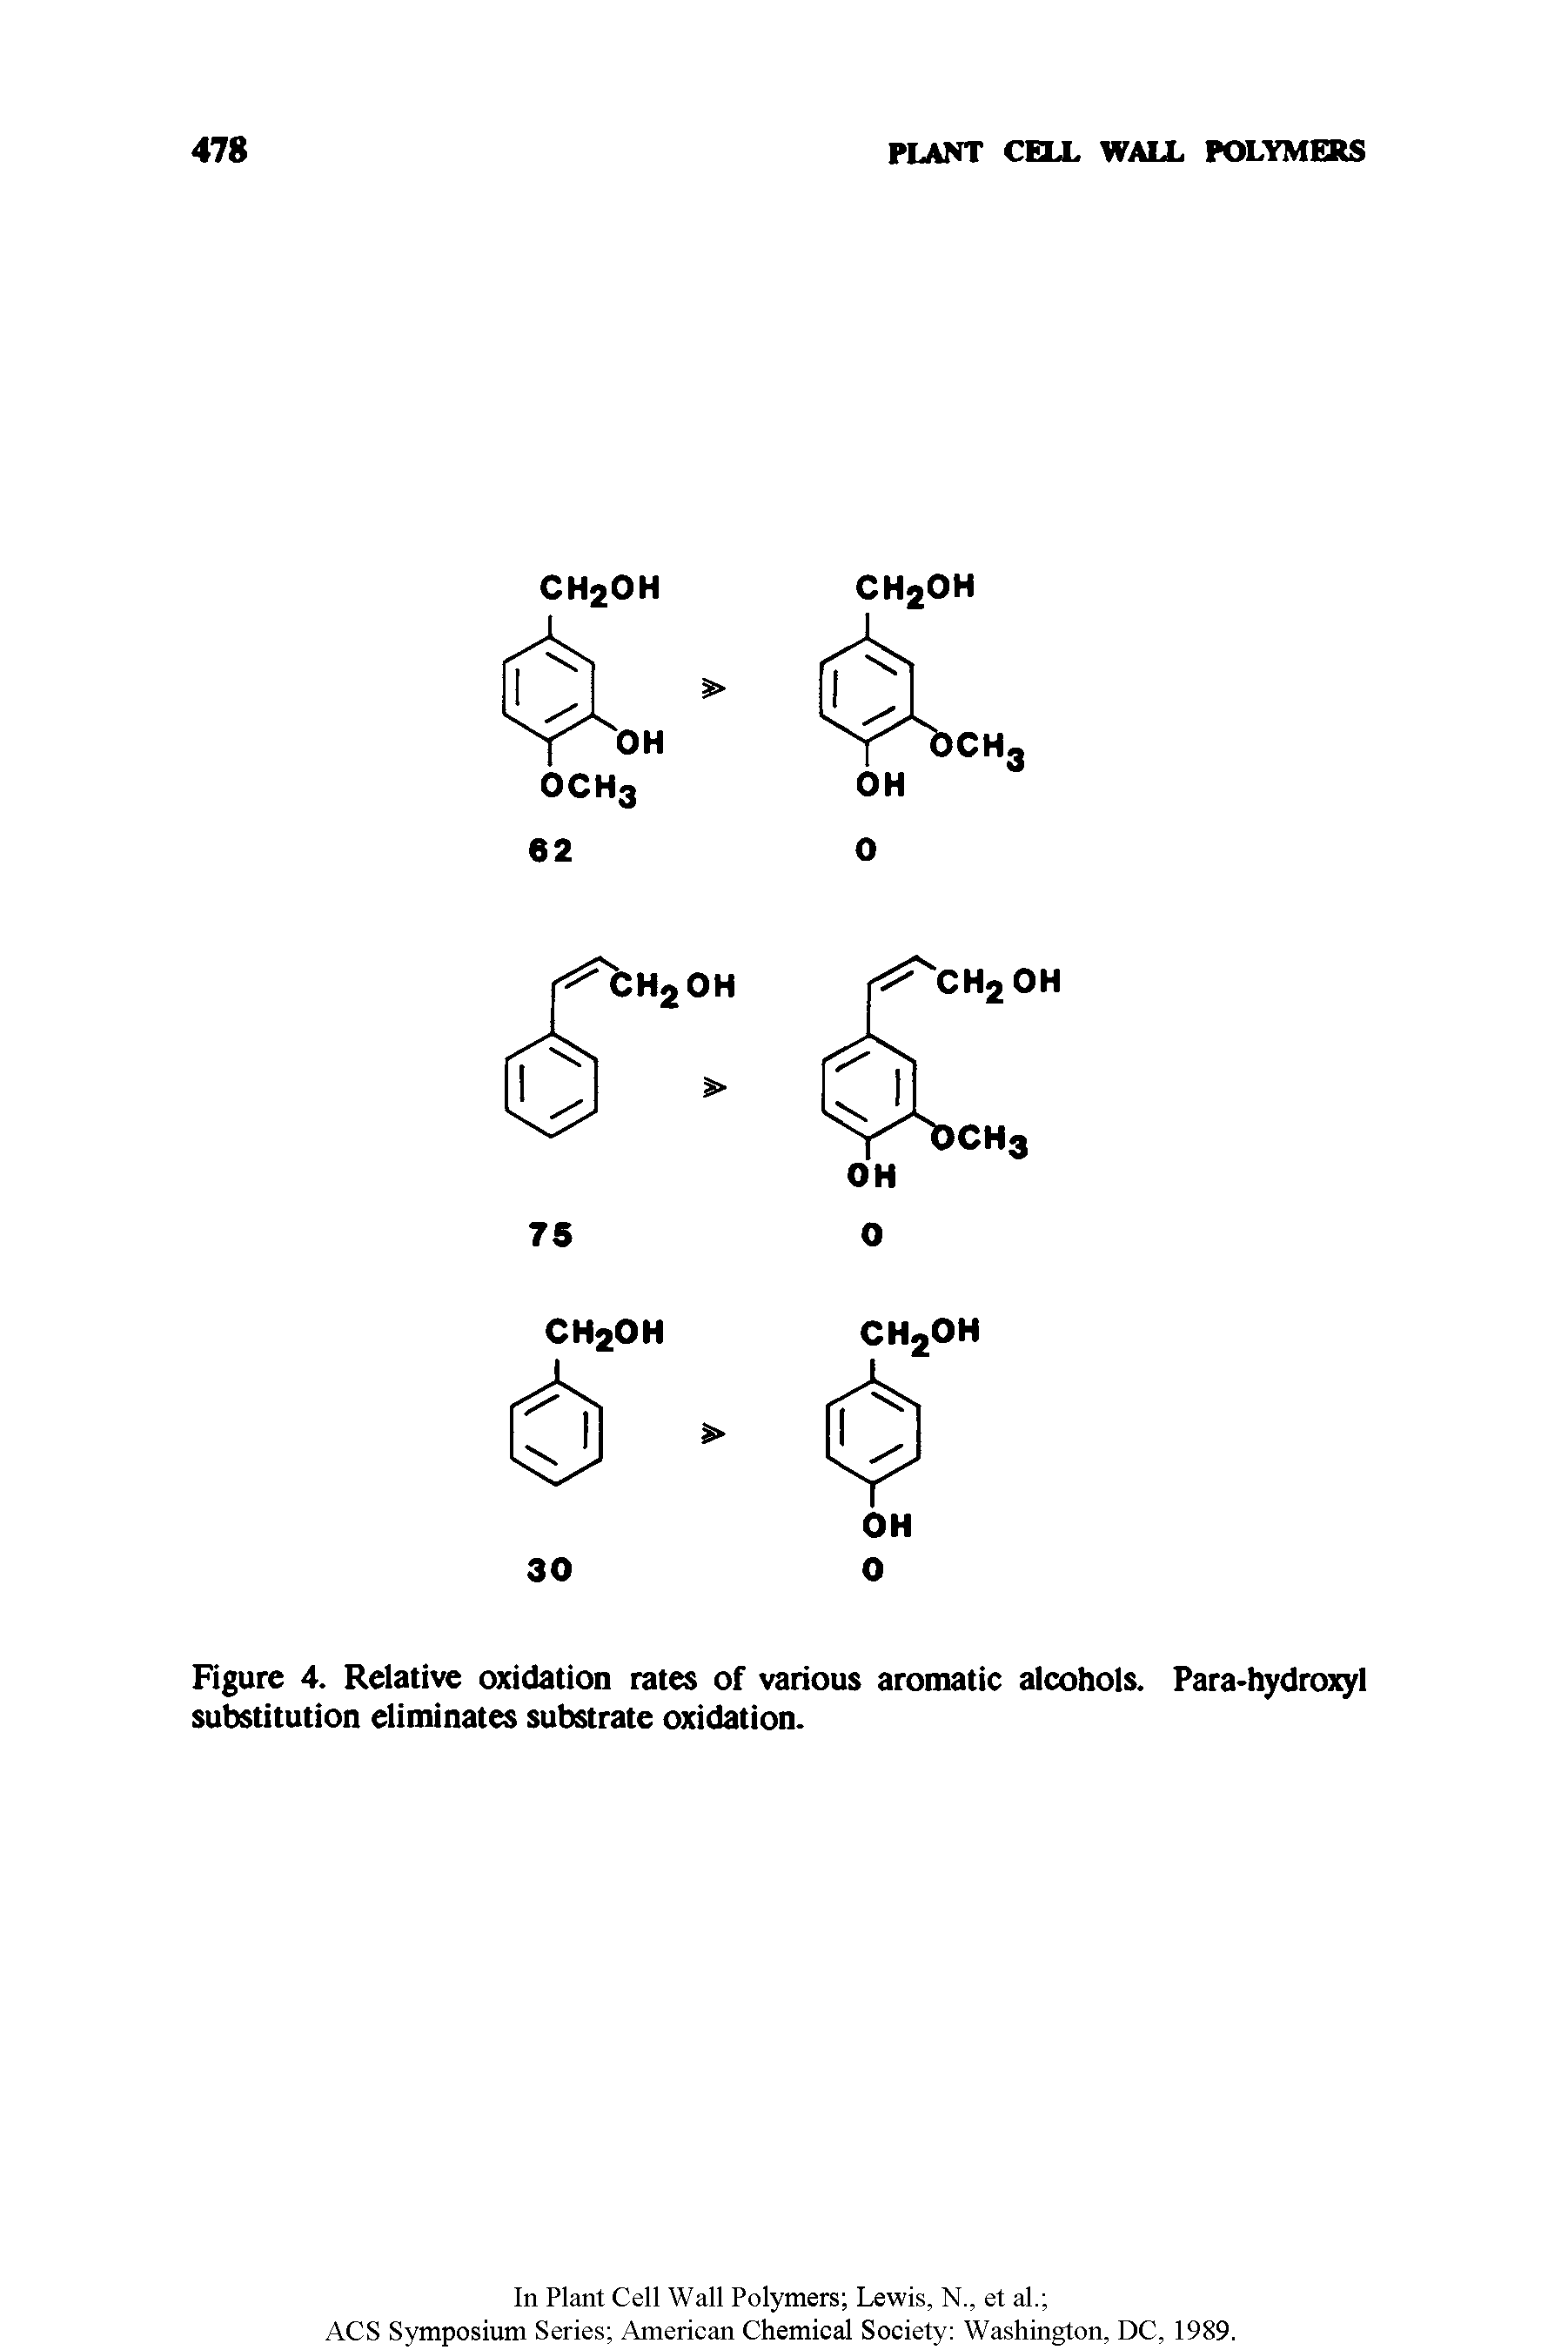 Figure 4. Relative oxidation rates of various aromatic alcohols. Para-hydroxyl substitution eliminates substrate oxidation.